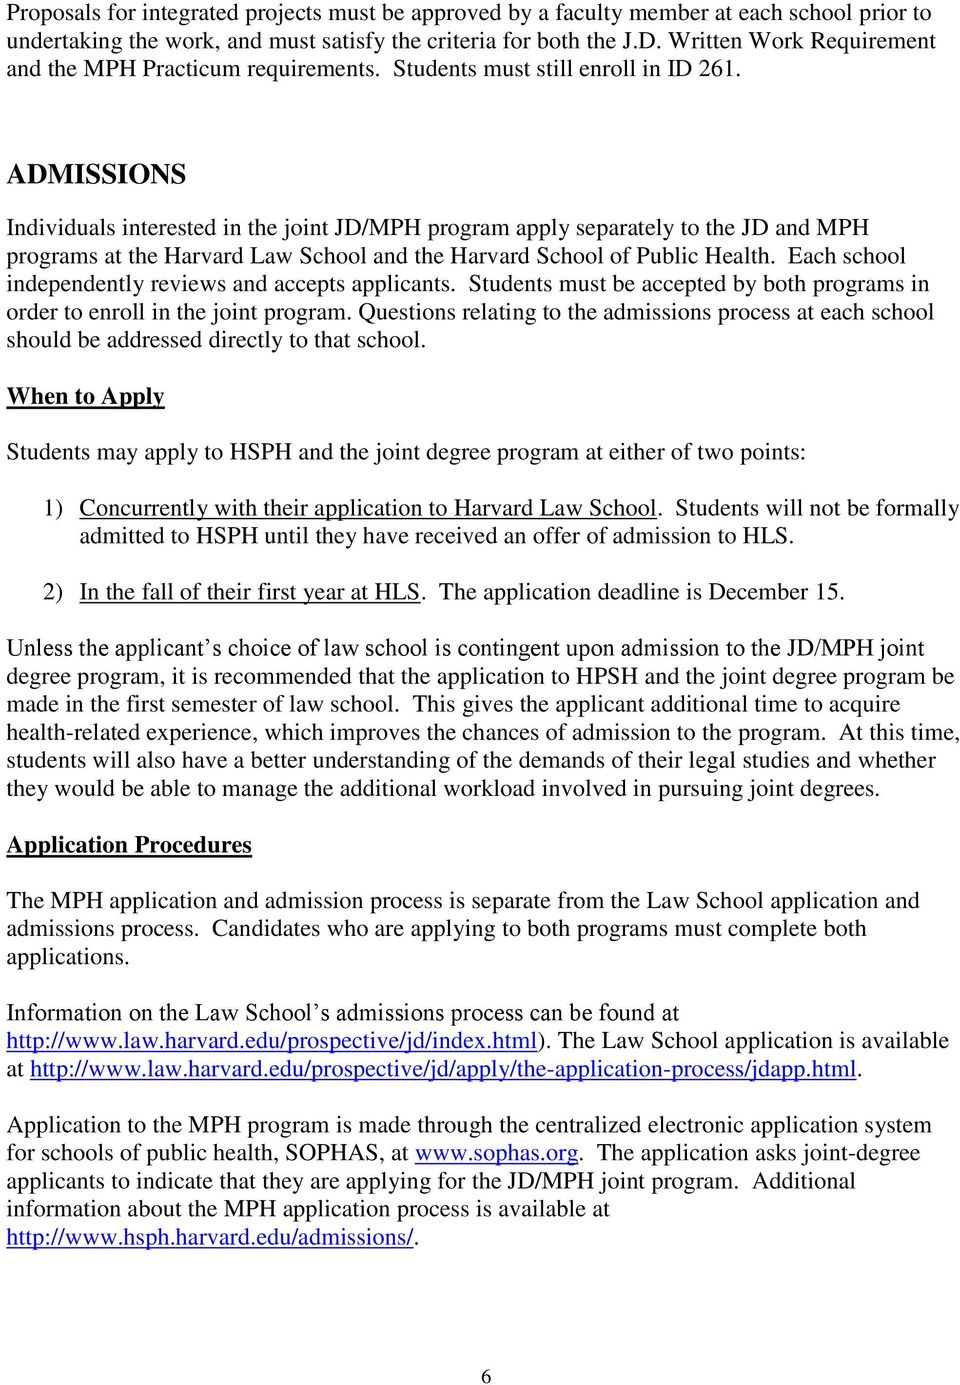 ADMISSIONS Individuals interested in the joint JD/MPH program apply separately to the JD and MPH programs at the Harvard Law School and the Harvard School of Public Health.